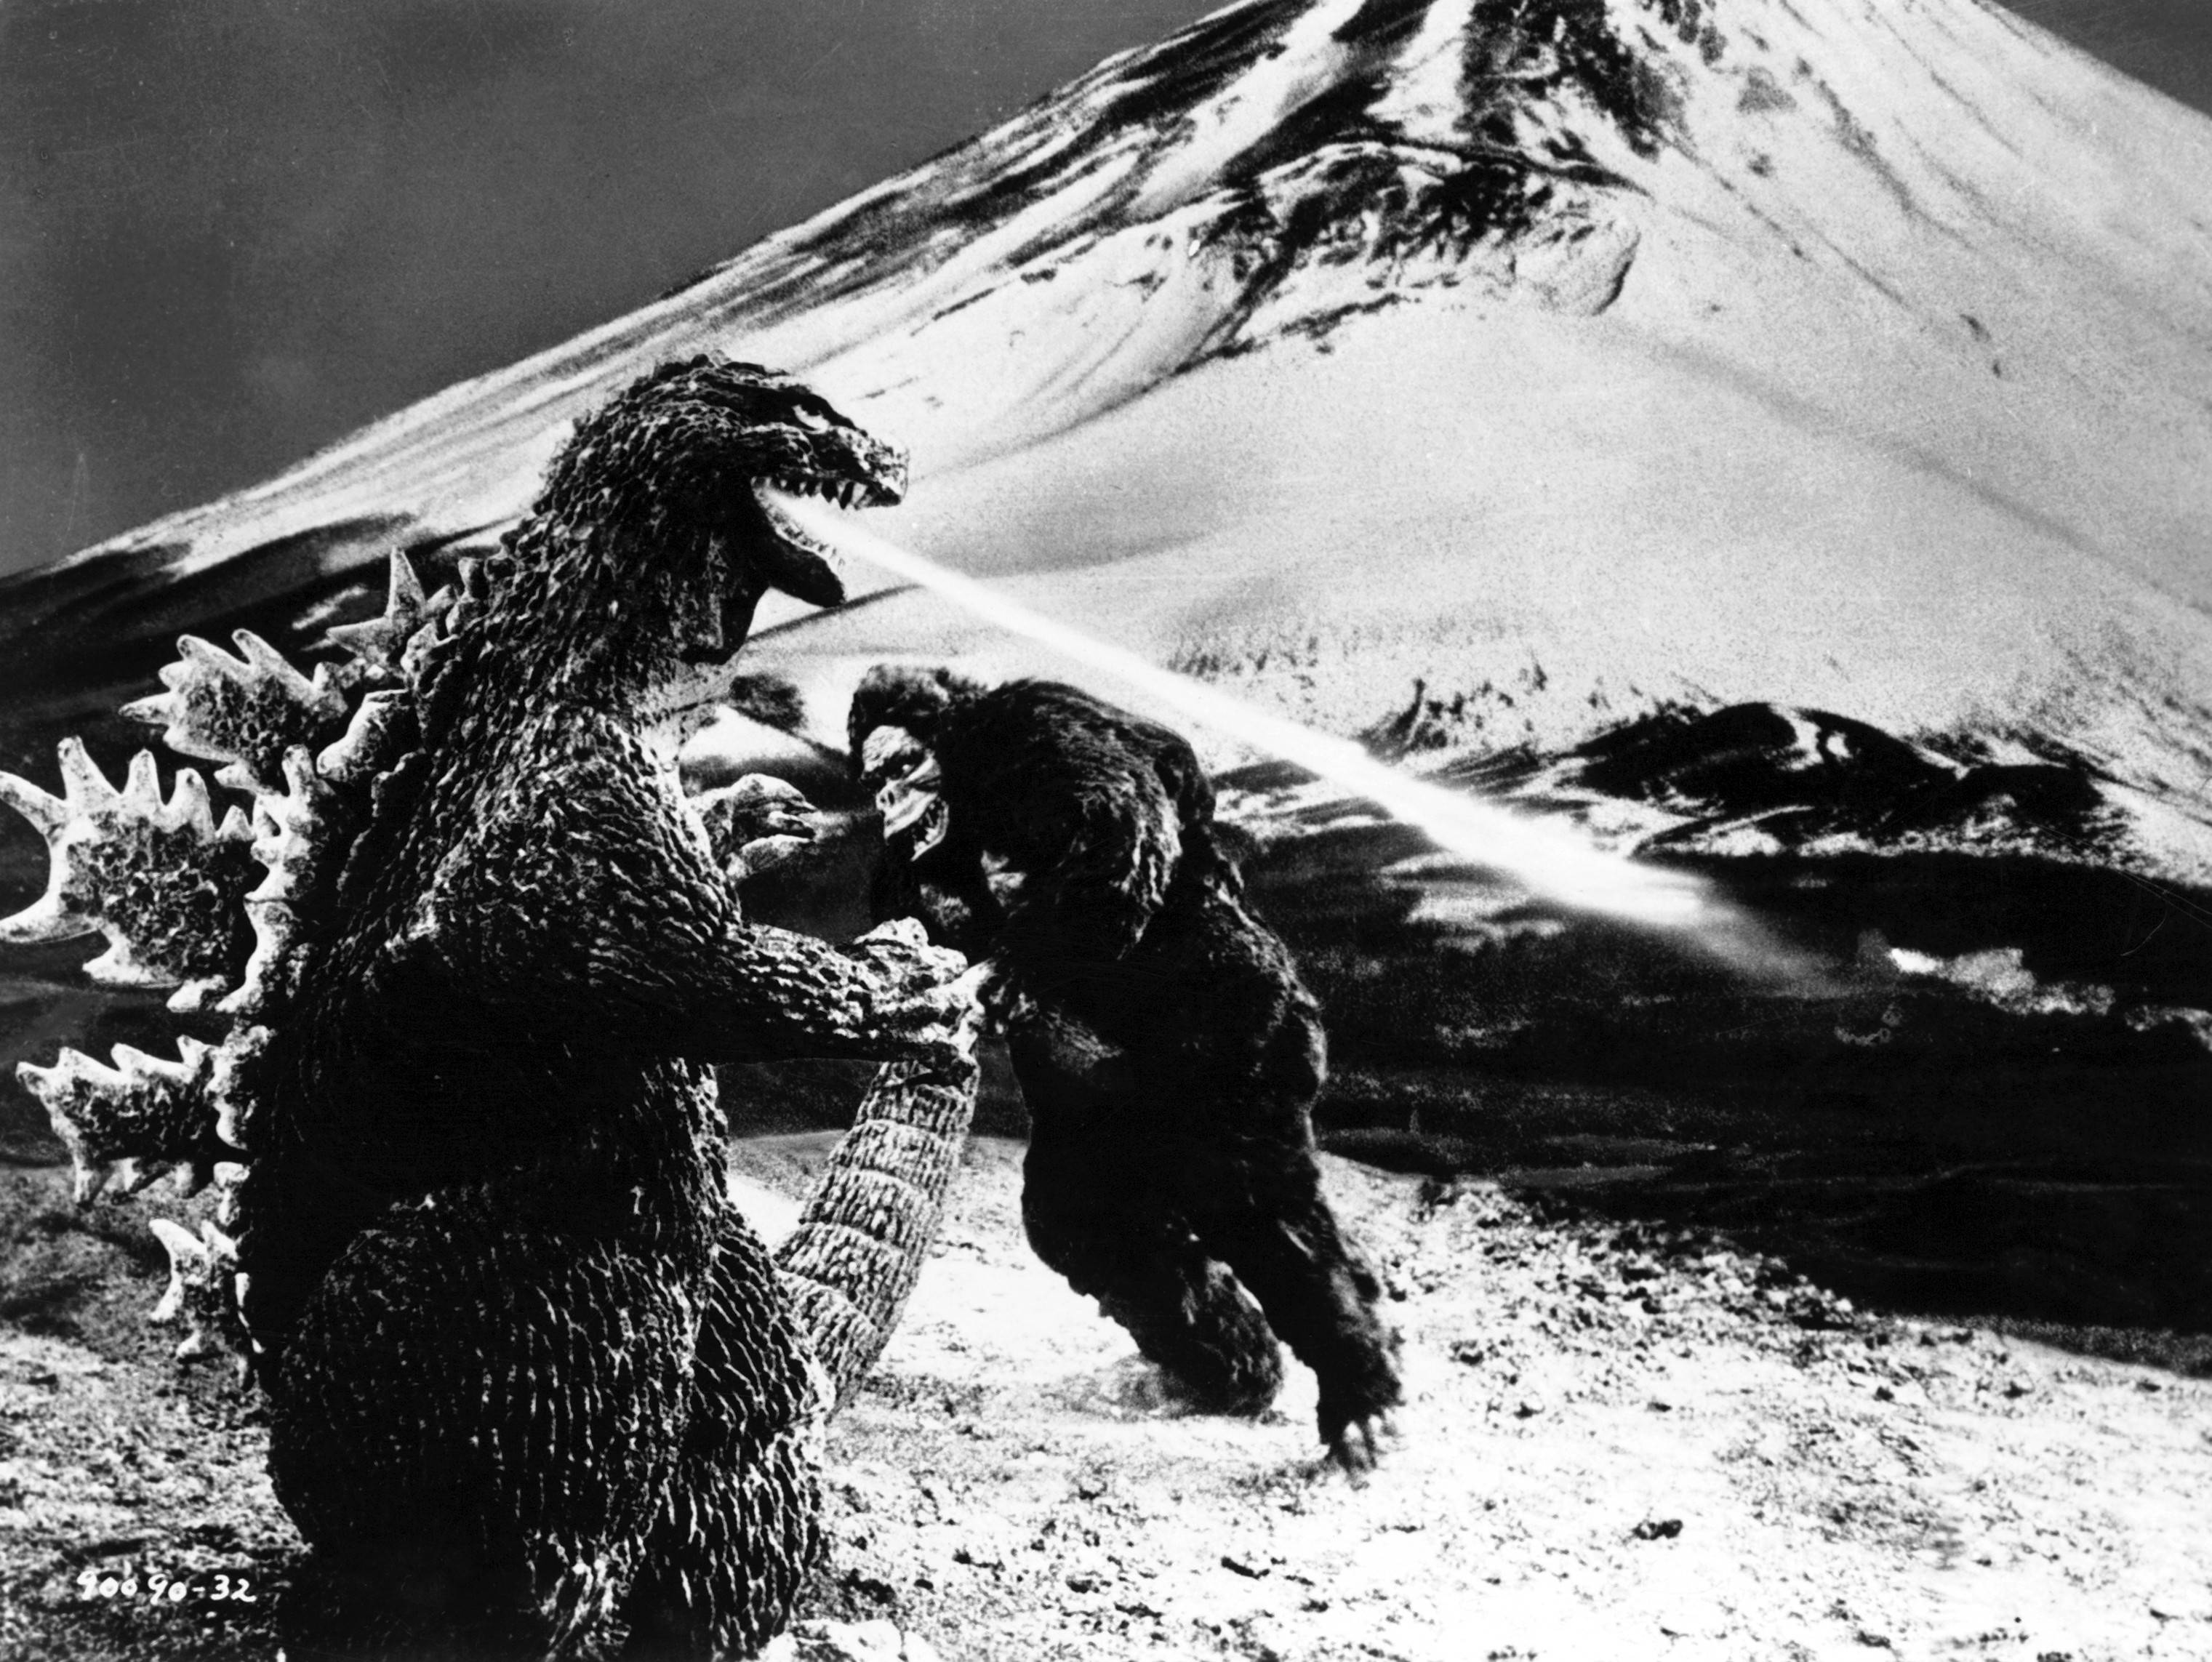 """King Kong Vs. Godzilla"" is one of several genre thrillers presented at the 16-Hour Sci-Fi Marathon at the Patio Theater in Chicago."